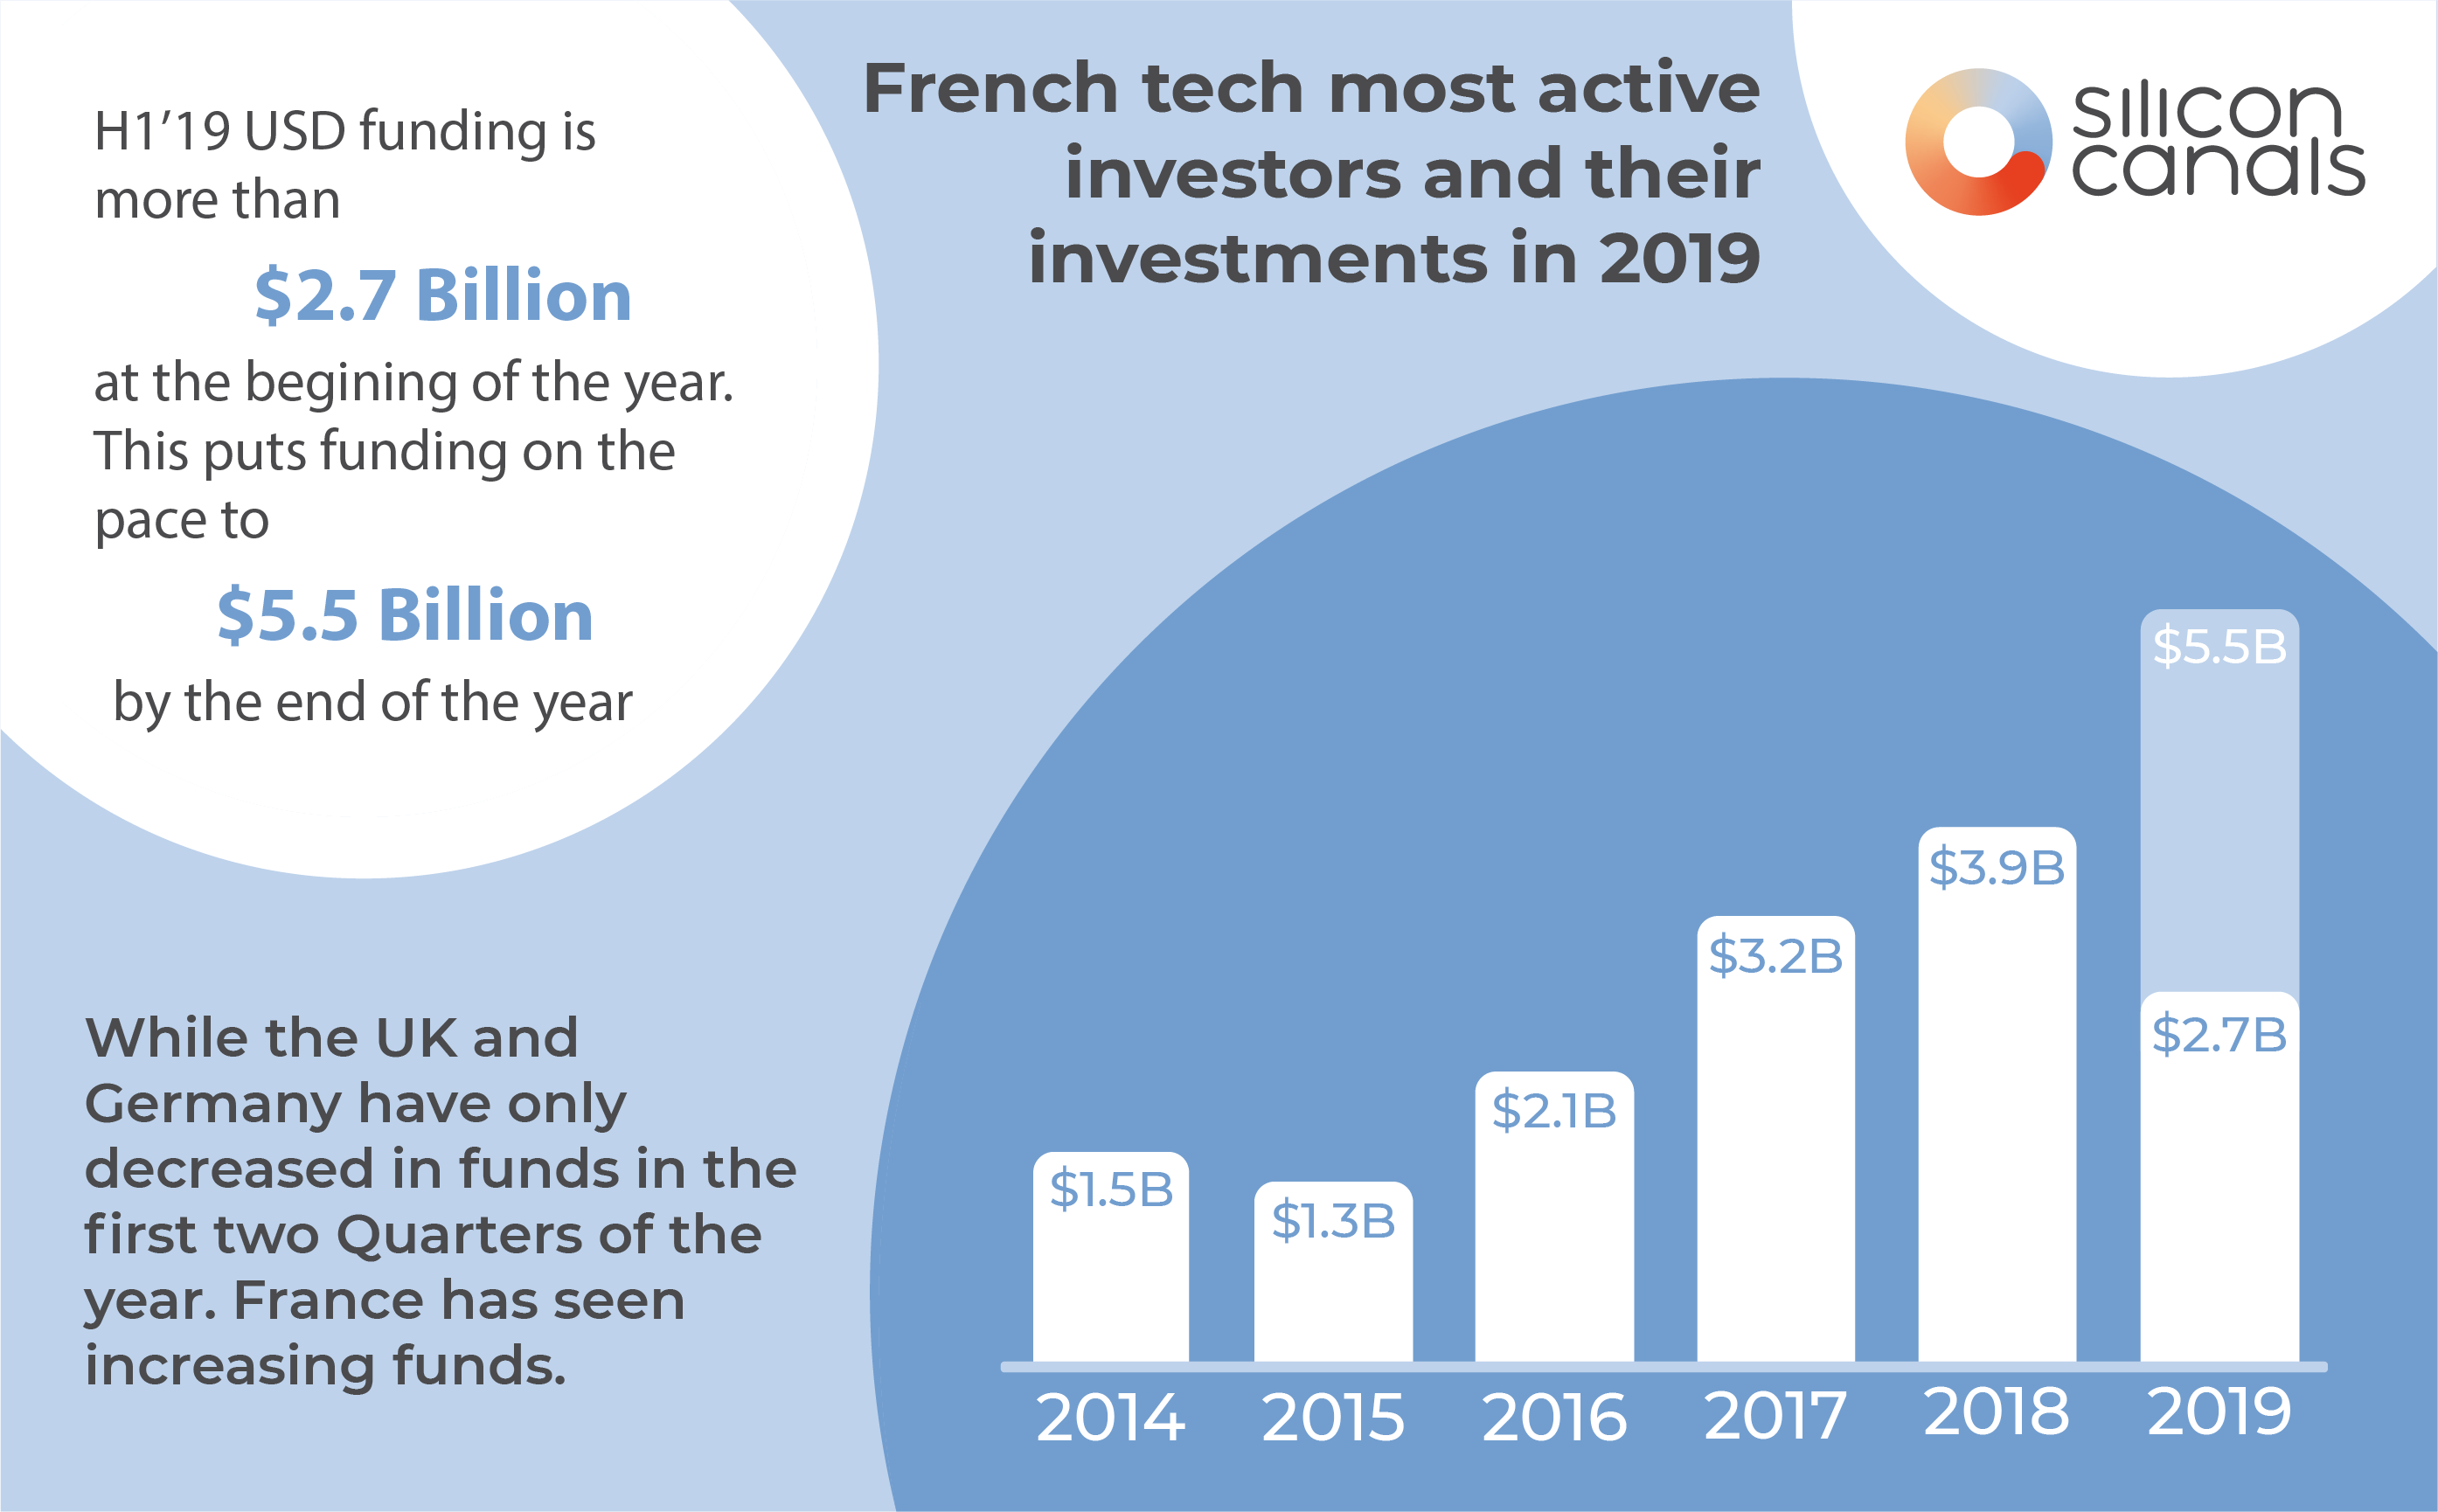 The most active French tech investors and their investments in 2019